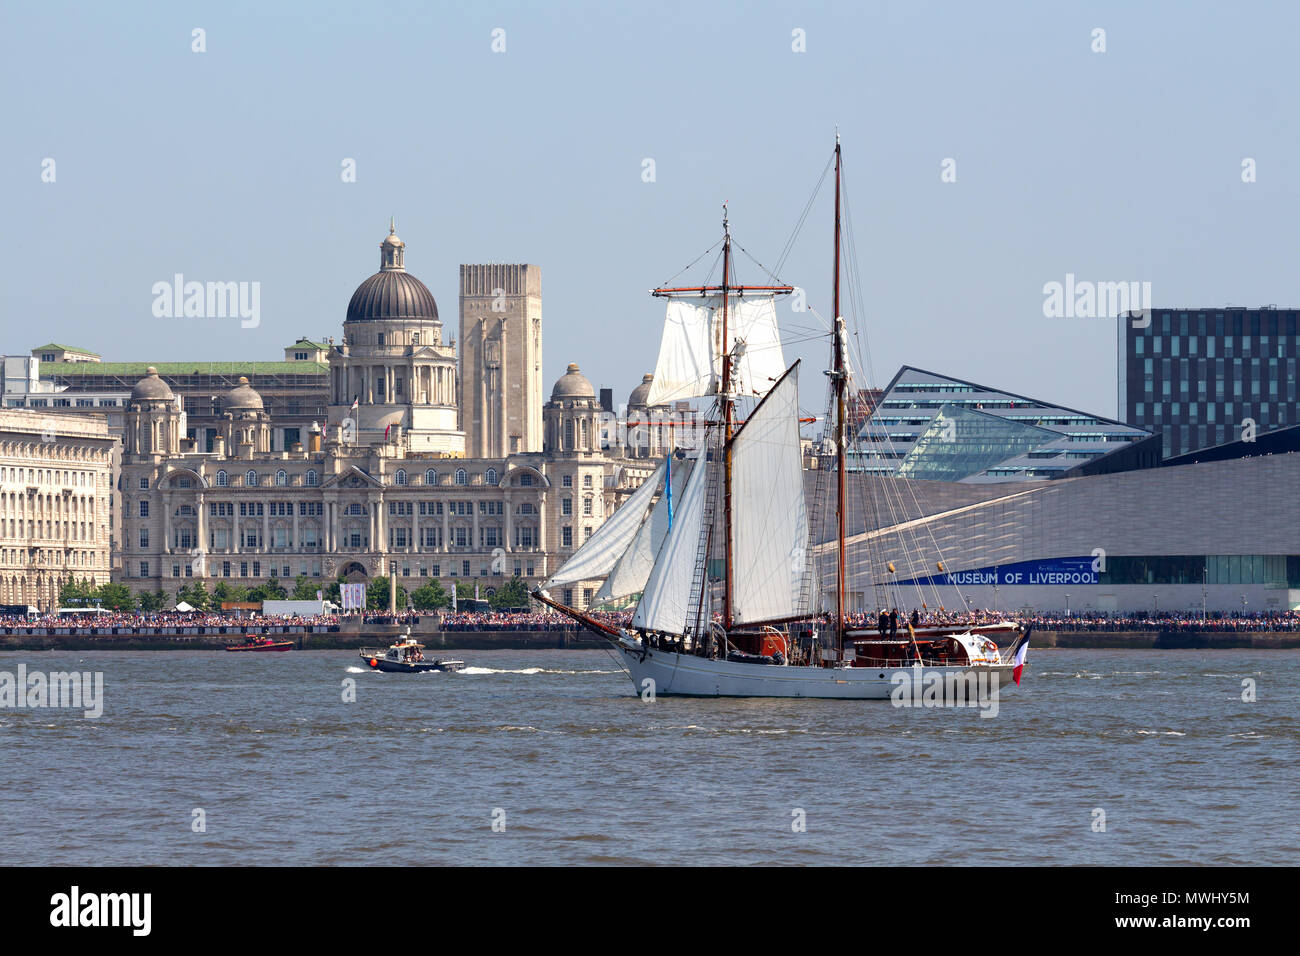 Tall ship Belle Poule on the River Mersey during the parade of sail during the Tall Ships Festival in Liverpool May 2018 - Stock Image